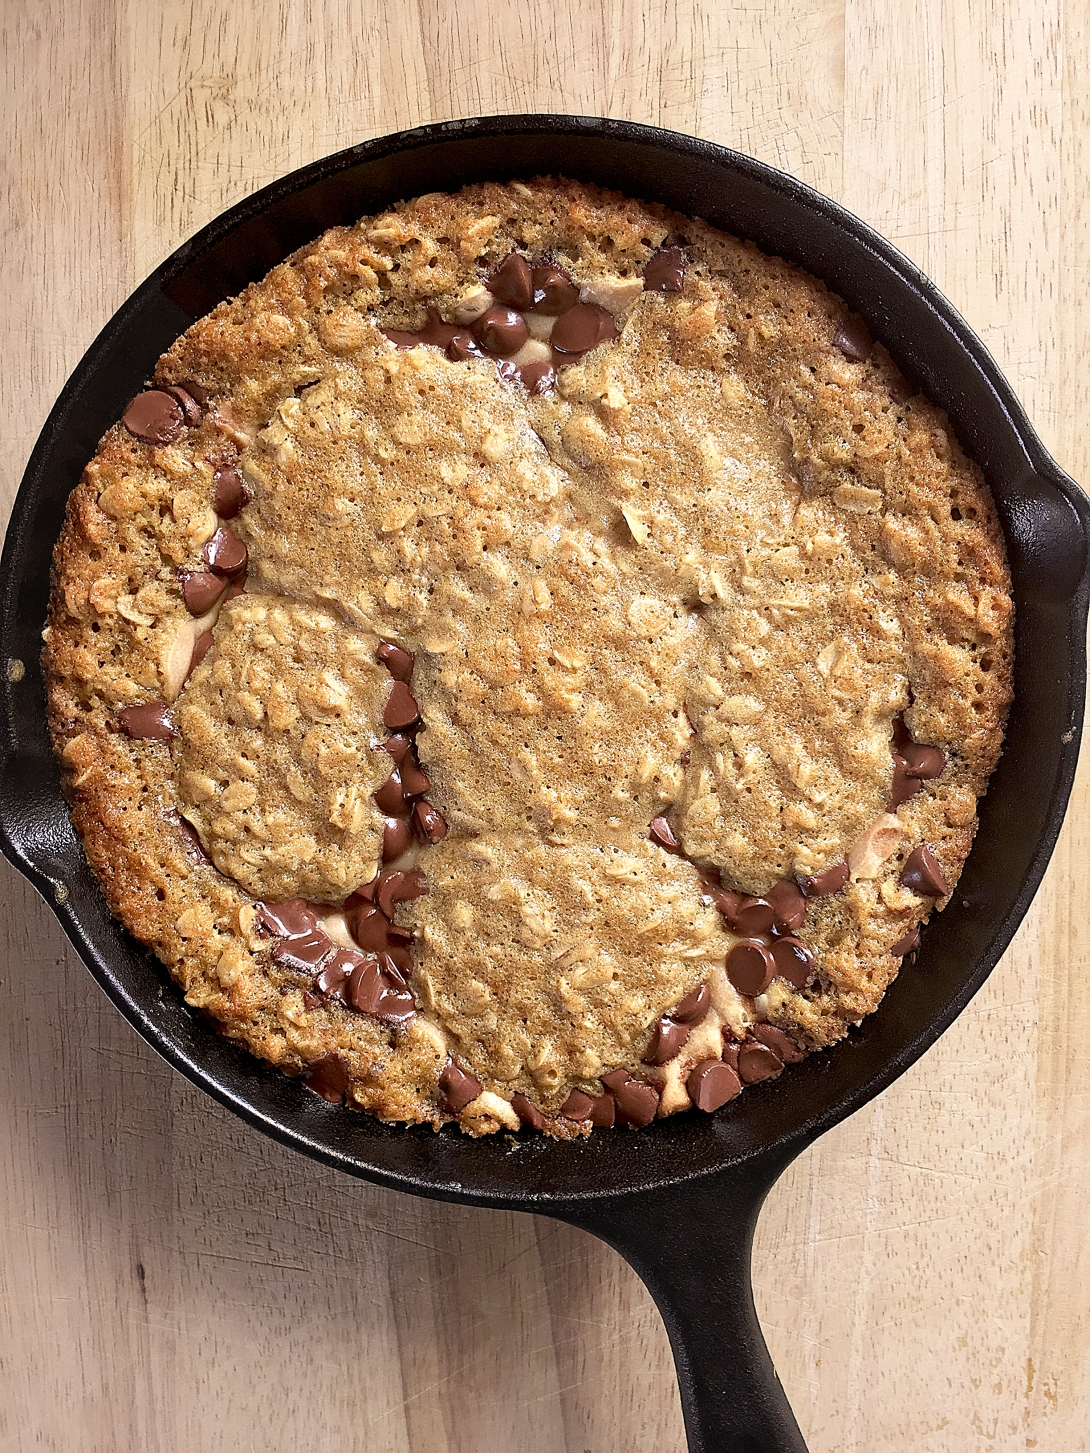 Skillet Cookie (Oatmeal Peanut Butter Chocolate Chip).jpg